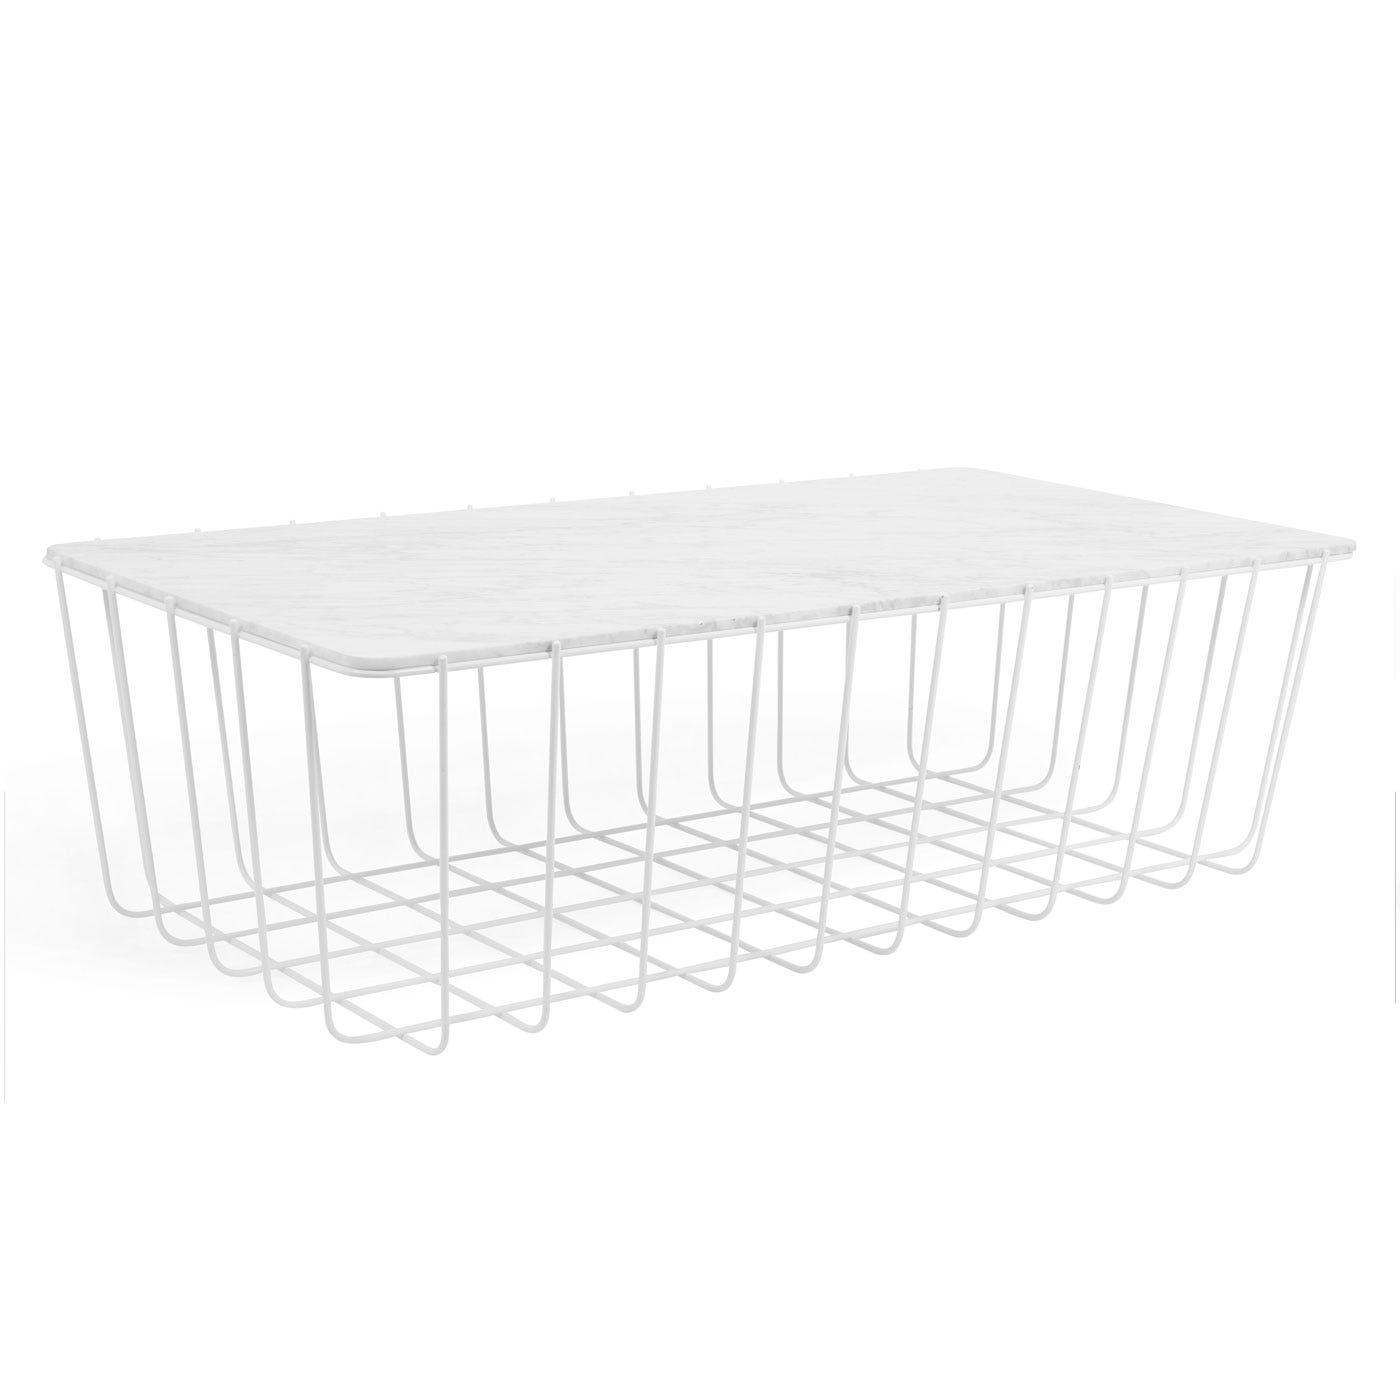 Scamp Large Table with White Base and Marble Top